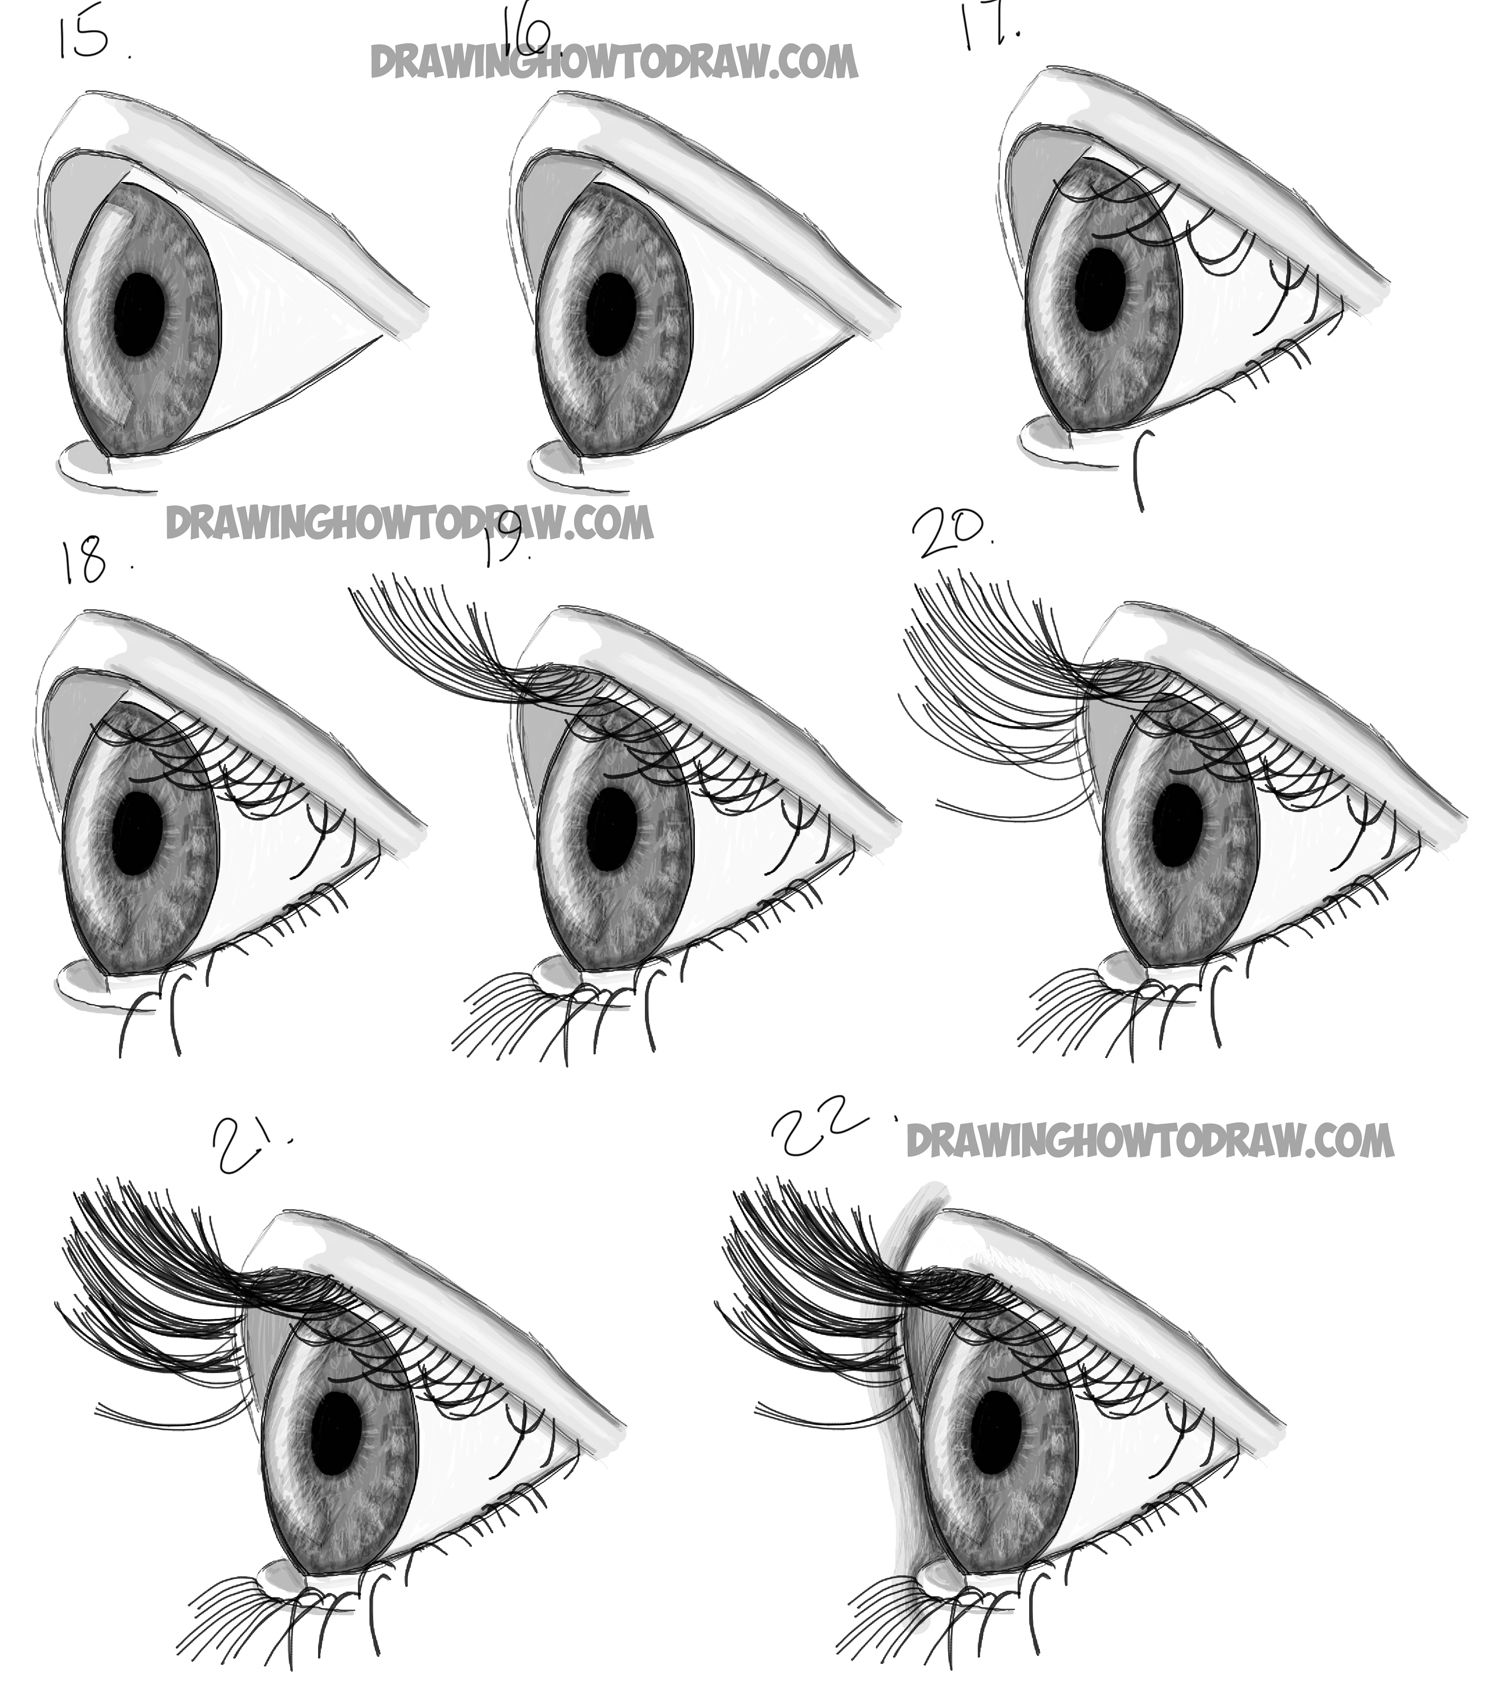 How to Draw Realistic Eyes from the Side Profile View Step by Step